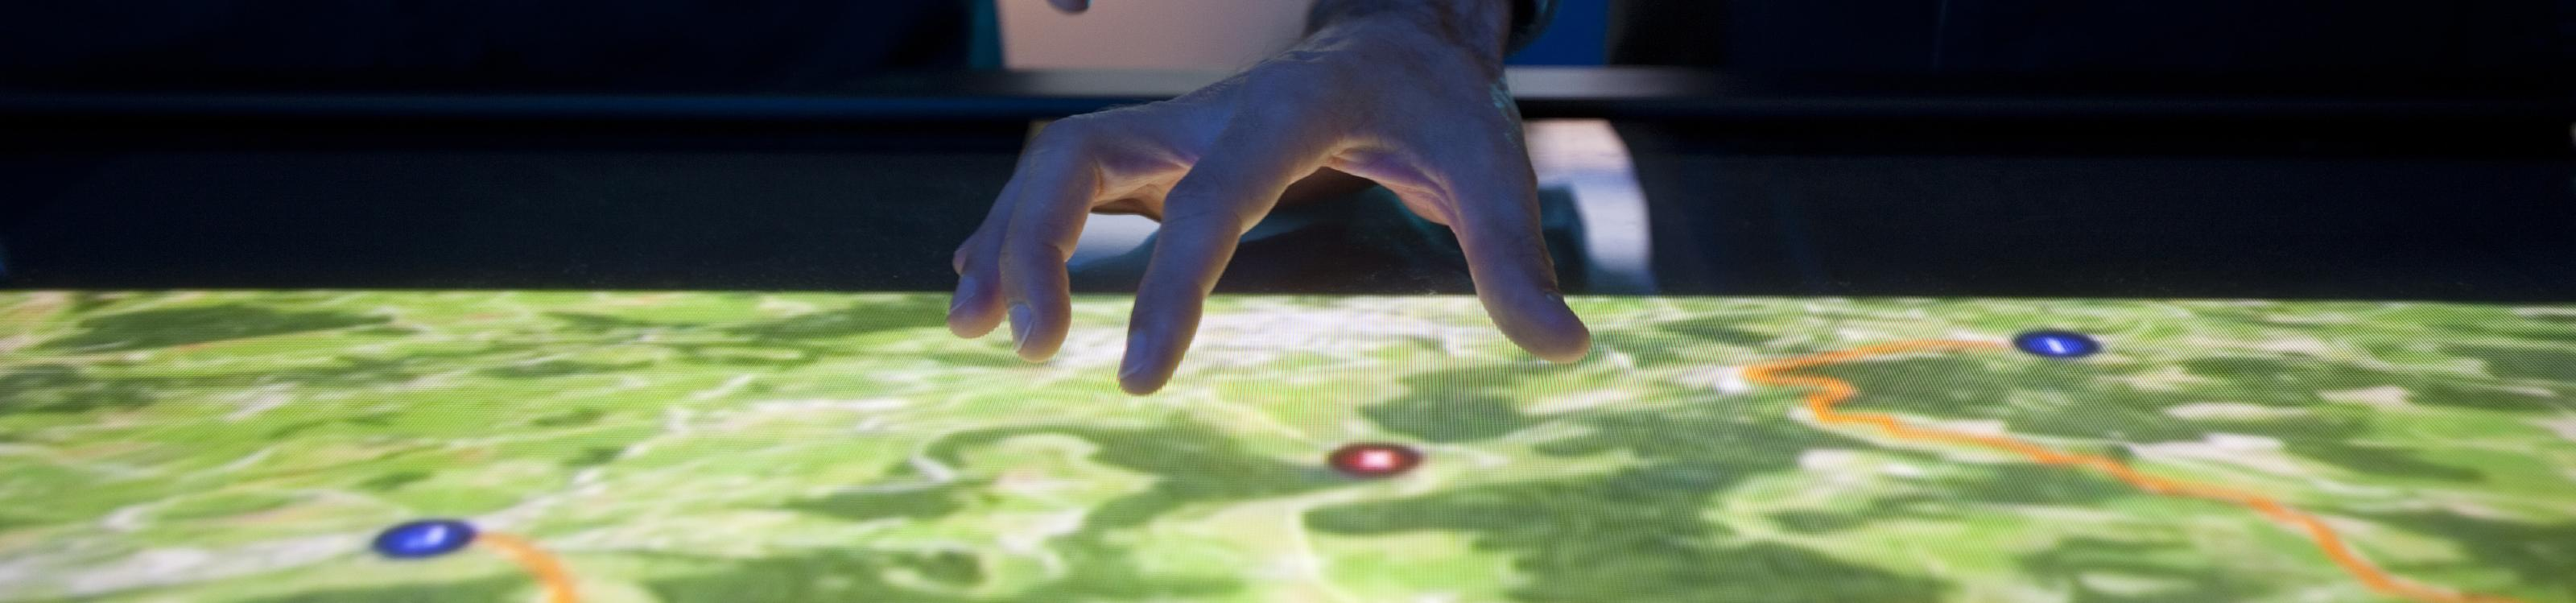 Eco-conception_2 - Thalesgroup